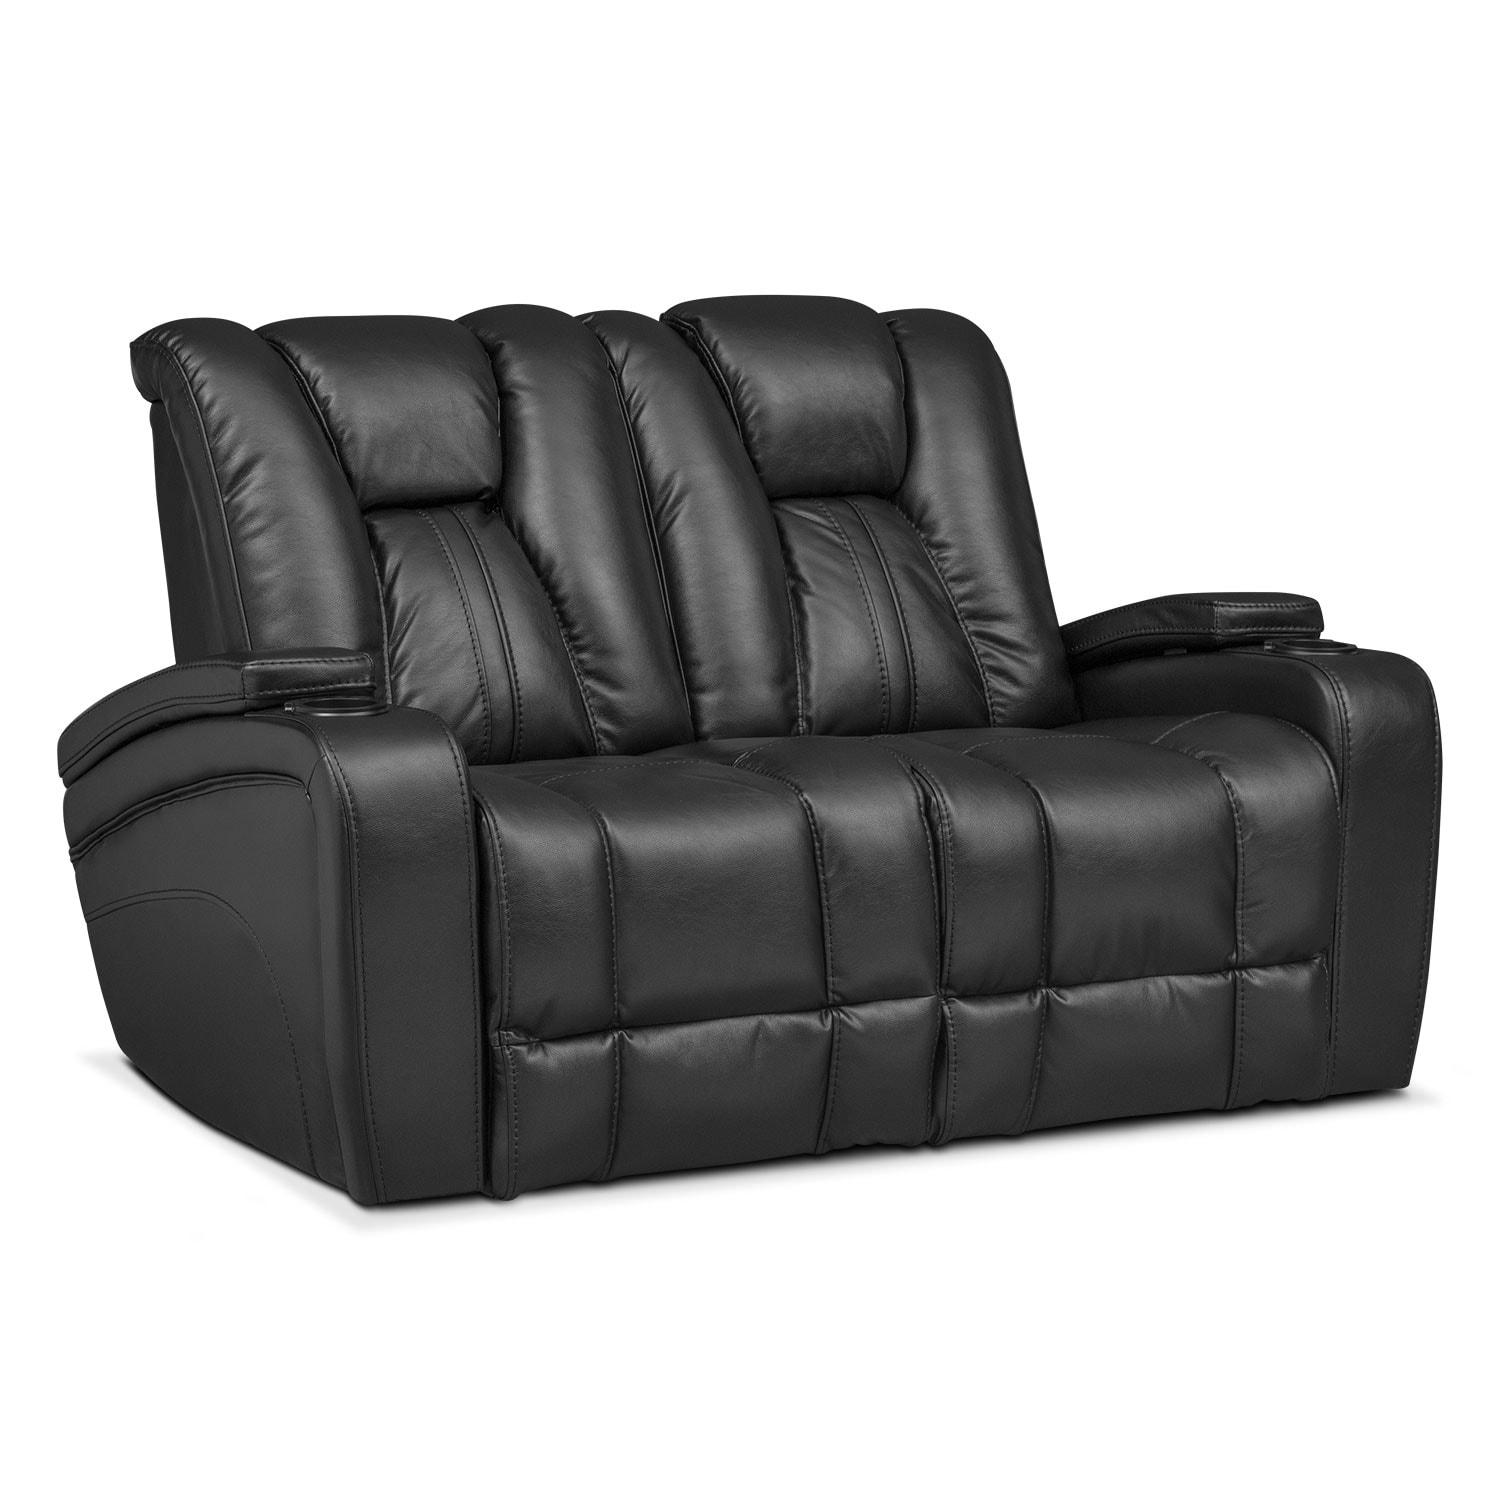 Pulsar Dual Power Reclining Loveseat - Black by One80. Living Room Furniture - Pulsar Dual Power Reclining Loveseat - Black  sc 1 st  Value City Furniture & Pulsar Dual Power Reclining Loveseat - Black | Value City Furniture islam-shia.org